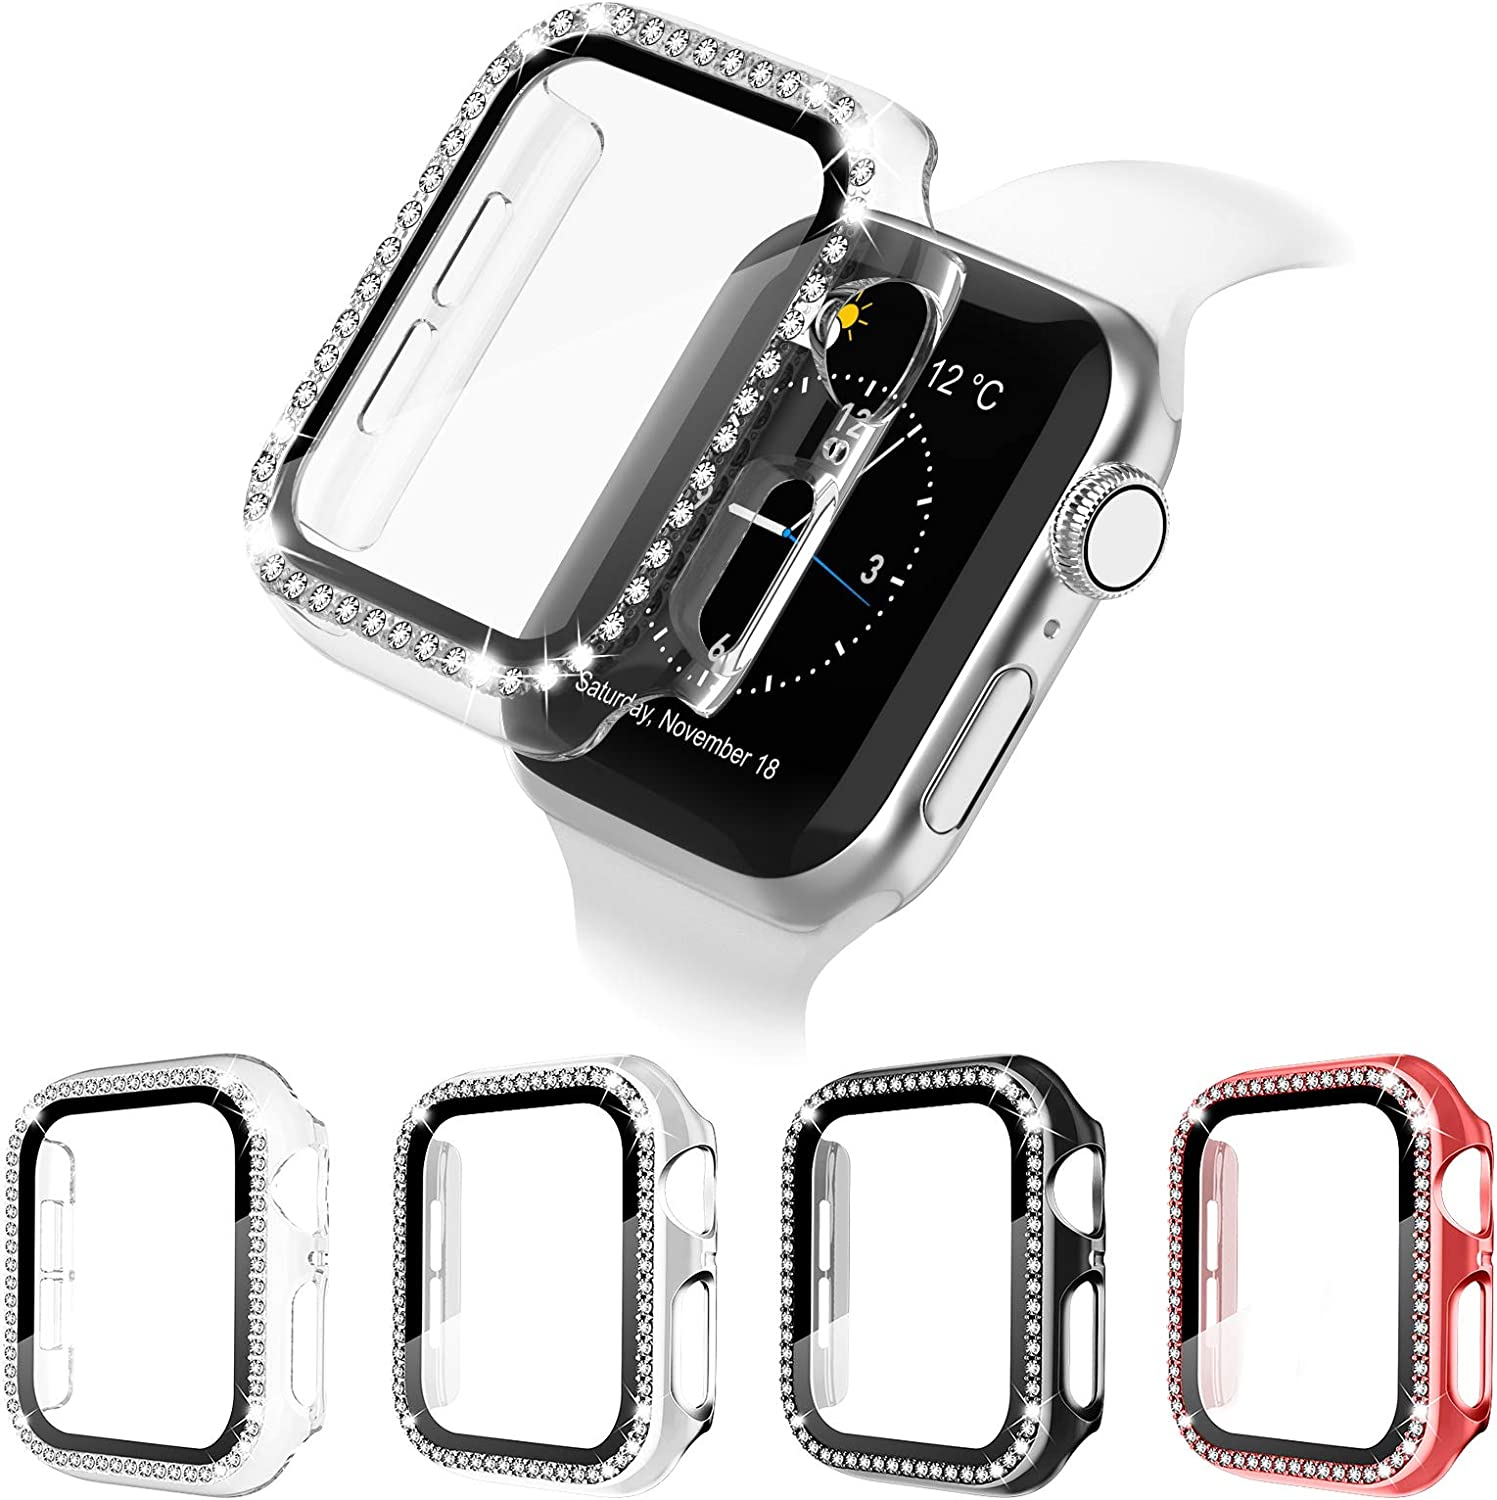 4 Pack Apple Watch Case with HD Tempered Glass Screen Protector for iWatch Series 6/5/4/3/2/1/SE, Full Cover Bling Diamond Crystal Rhinestone Protective Case (Black/Silver/Red/Clear, 38mm)